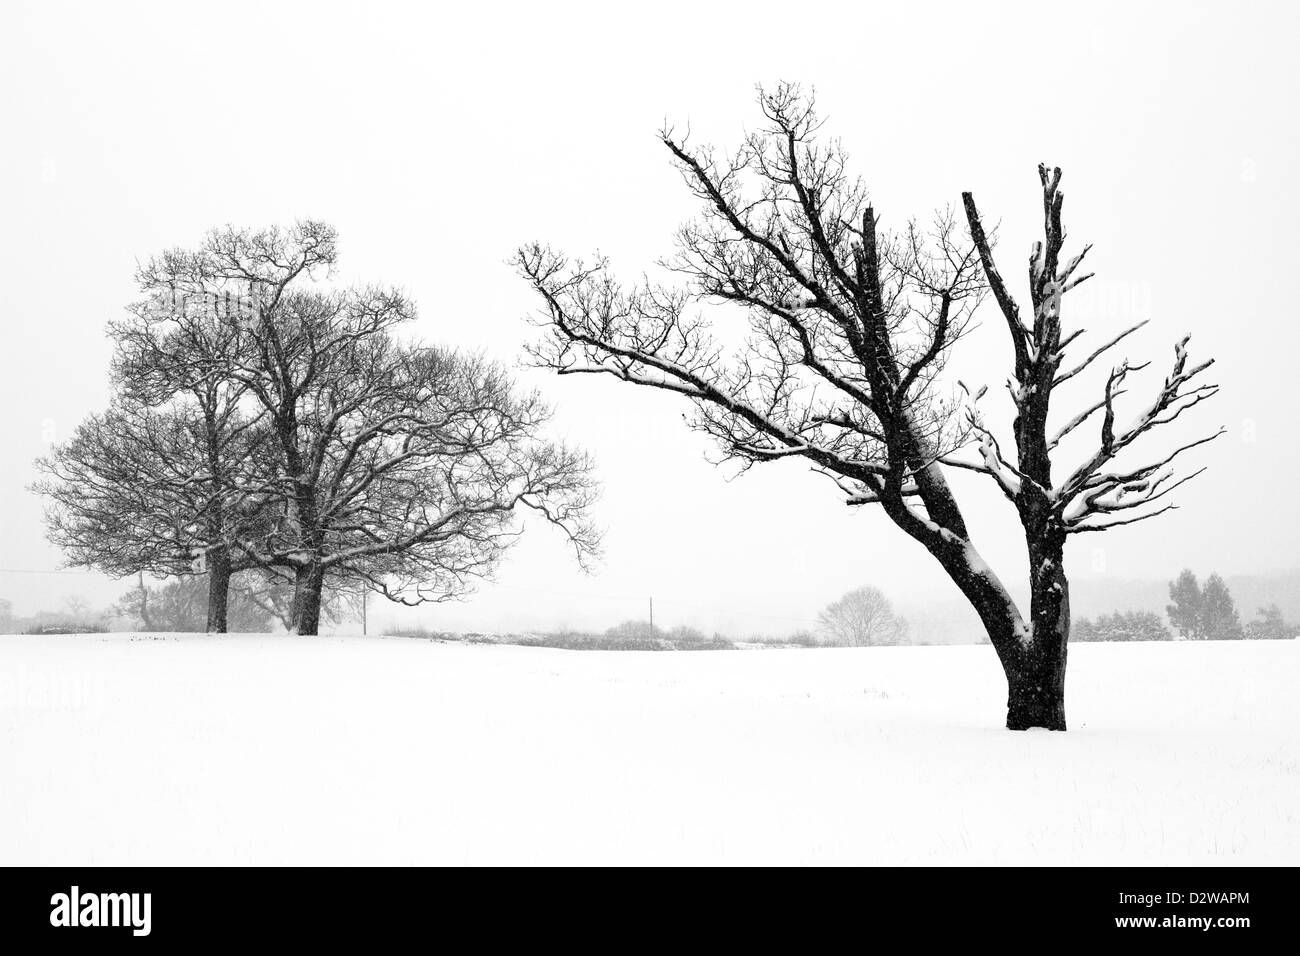 Black and white landscape: Trees in snow, Chislehurst, Kent UK - Stock Image